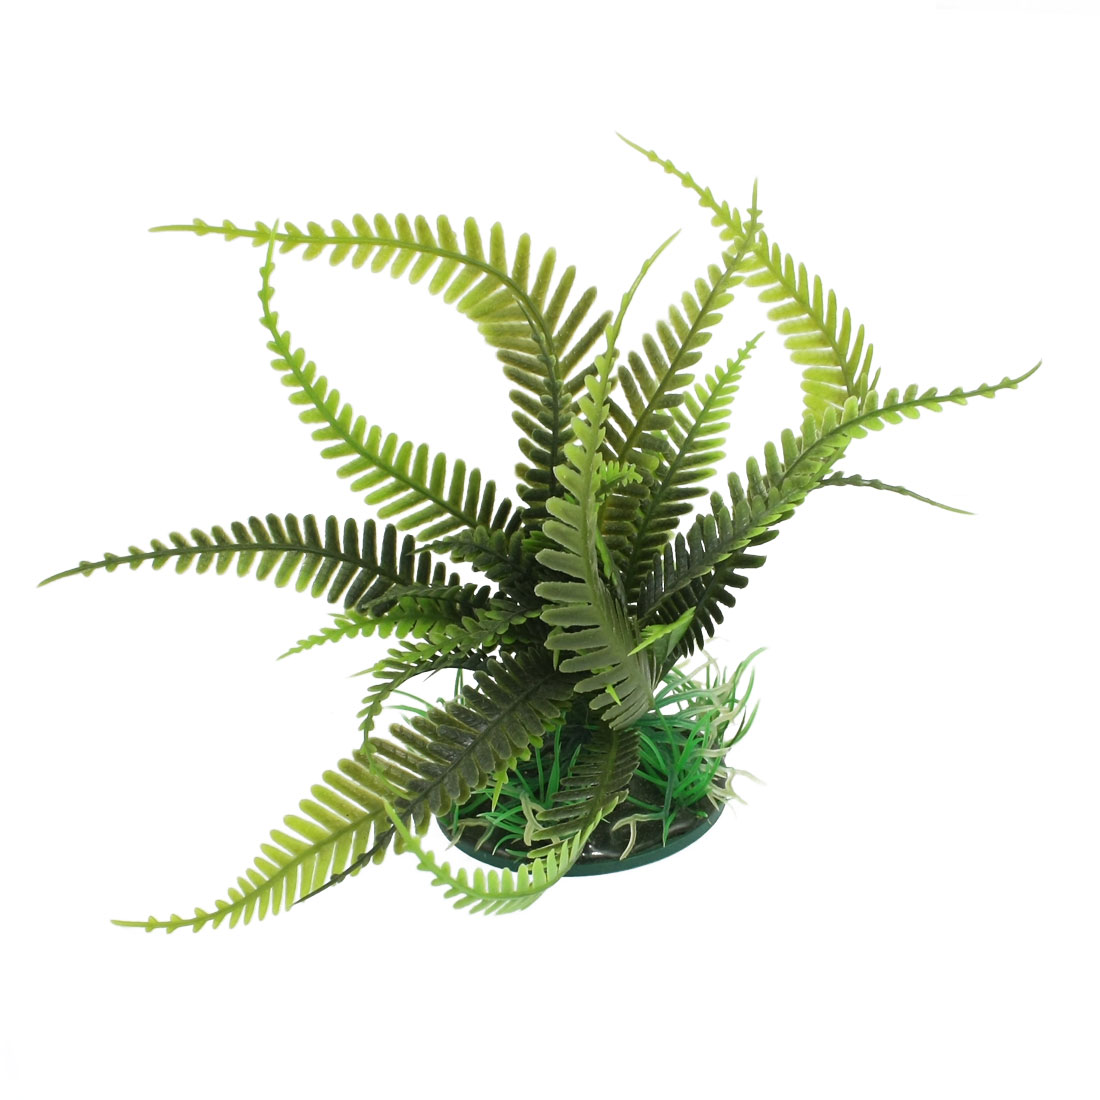 Artificial Aquarium Plastic Plant Decoration Ornament Olive Green 6.7""